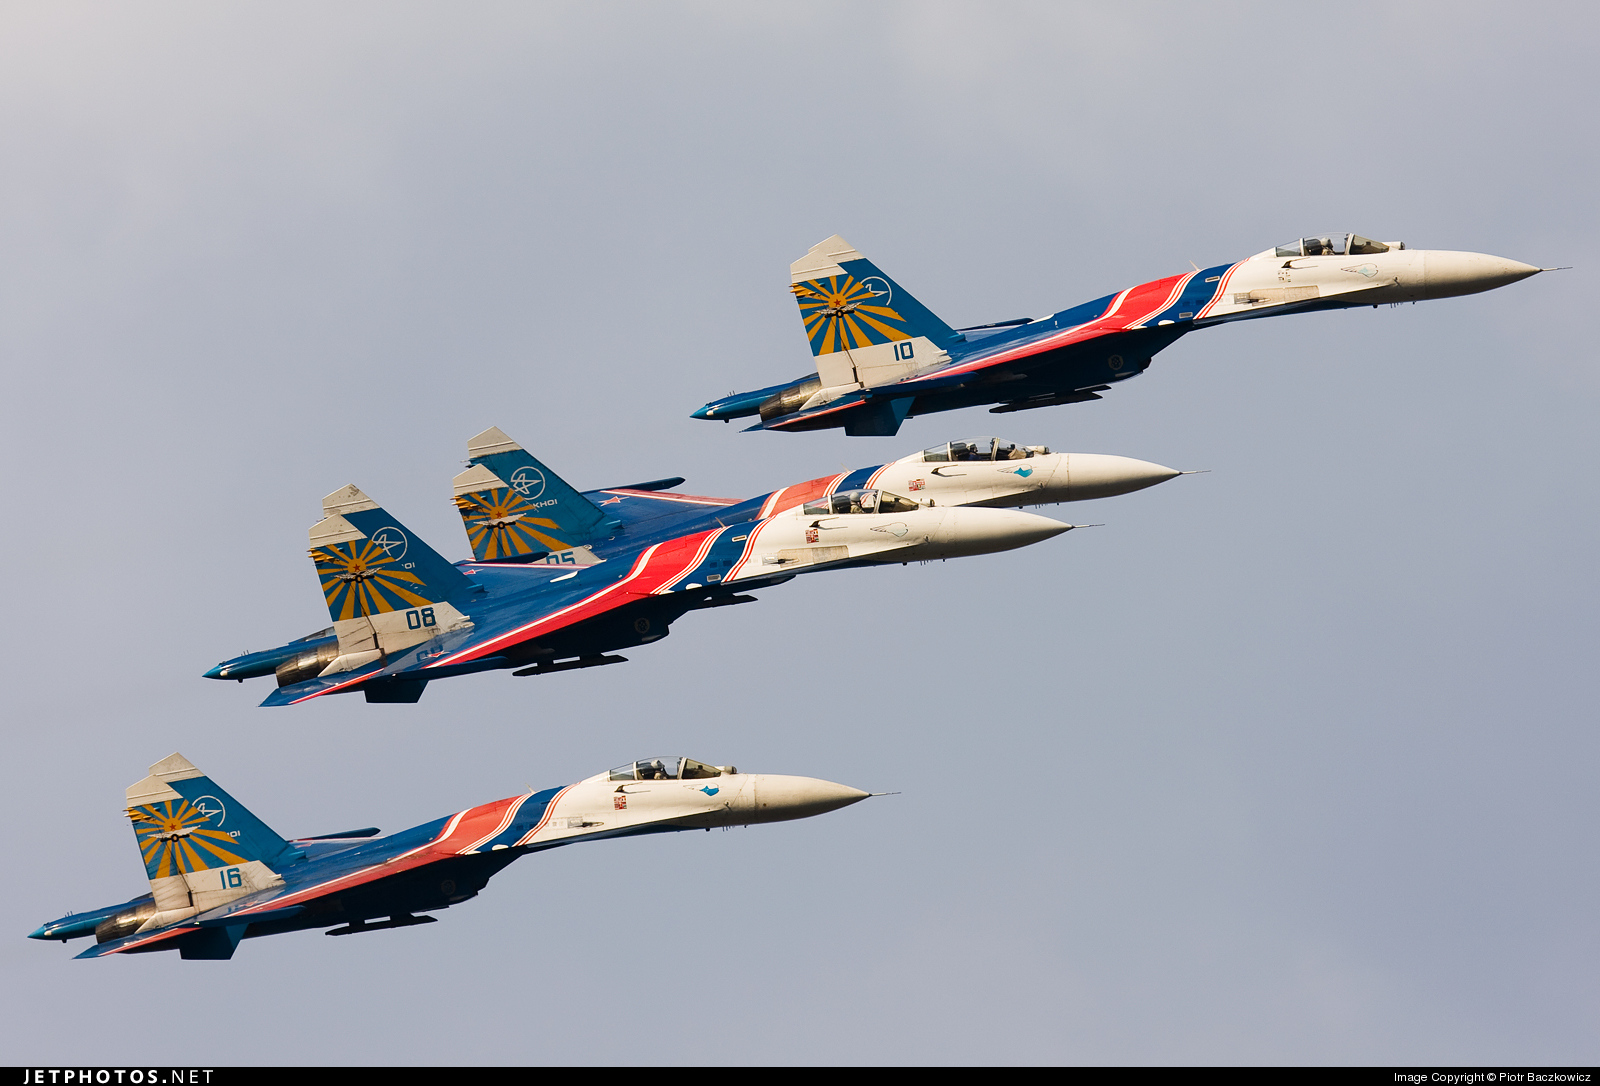 10 - Sukhoi Su-27 Flanker - Russia - Air Force